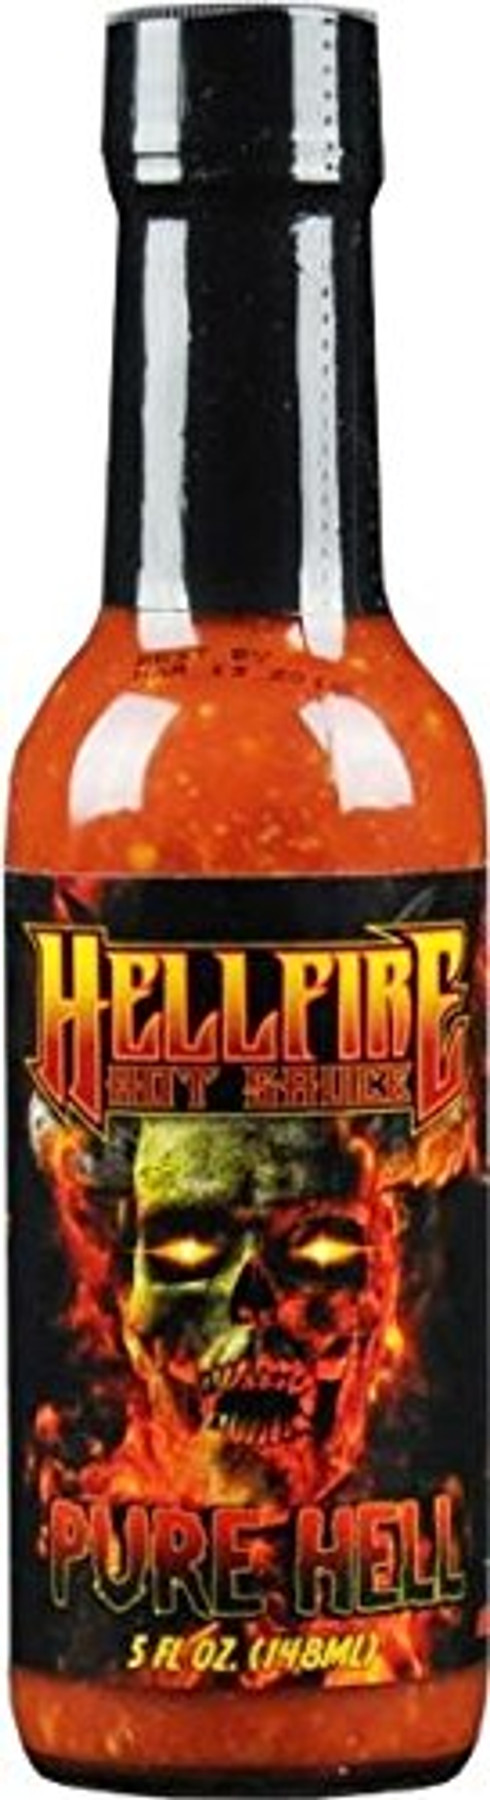 Hellfire's Pure Hell Hot Sauce  - Buys yours at Pepper Explosion